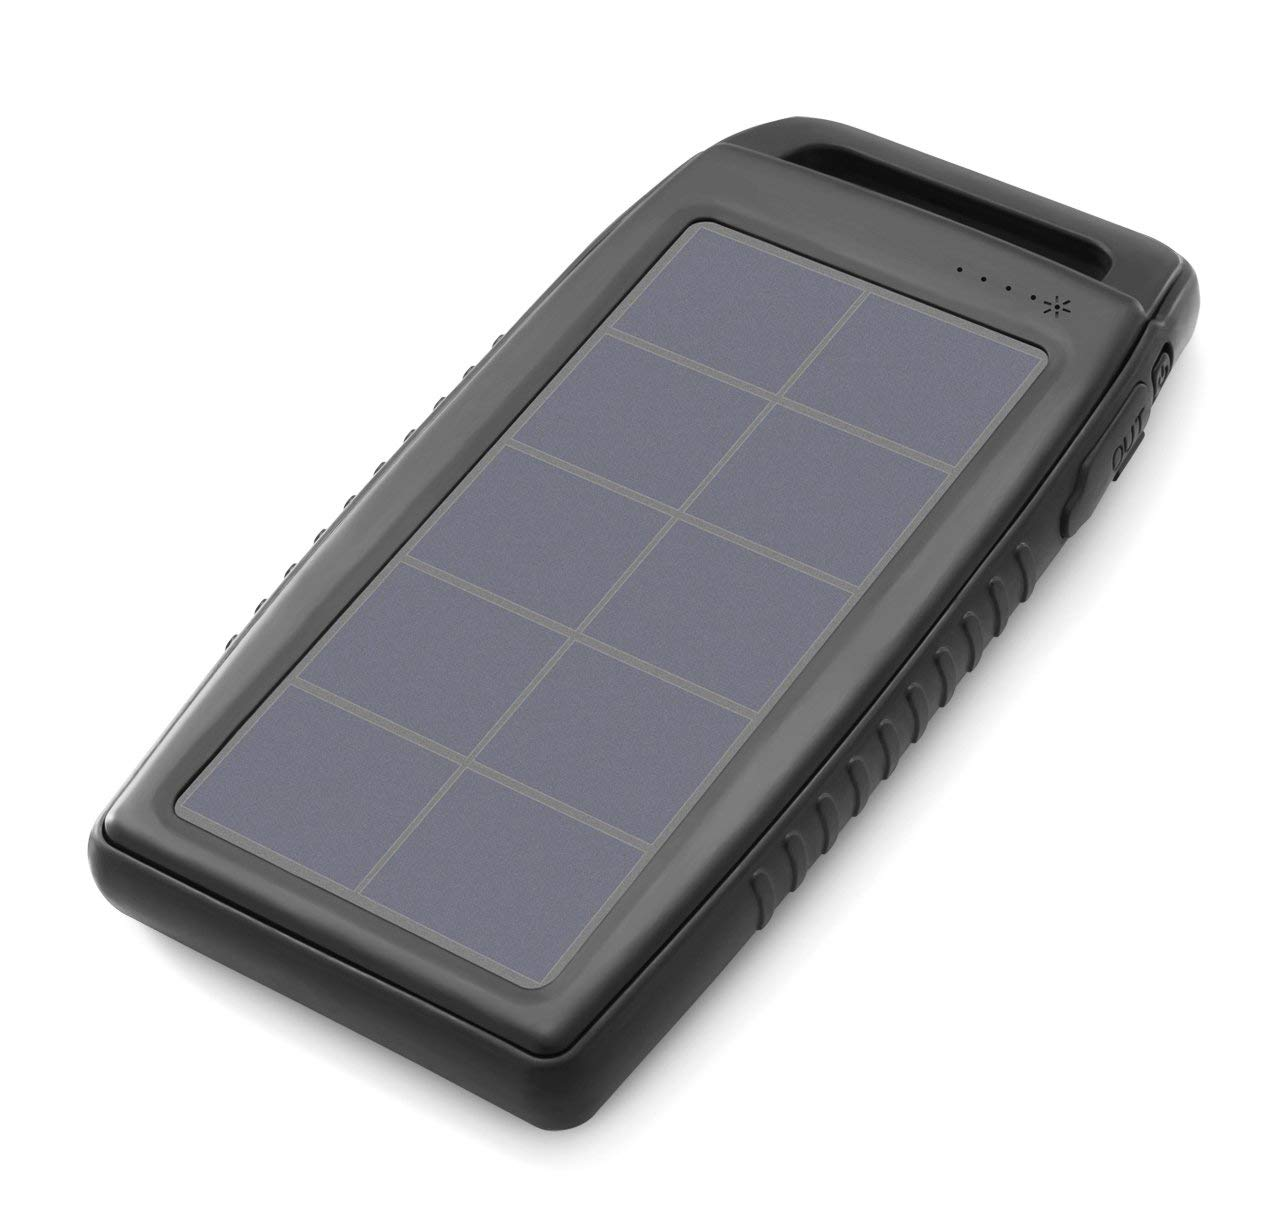 Nekteck 10000mAh Solar Charger Power Bank with Dual USB Ports Portable Charger Battery, High-Efficiency SunPower Solar Panel Rain-Resistant Dirt/Shockproof Backup for All USB Supported Devices, Black